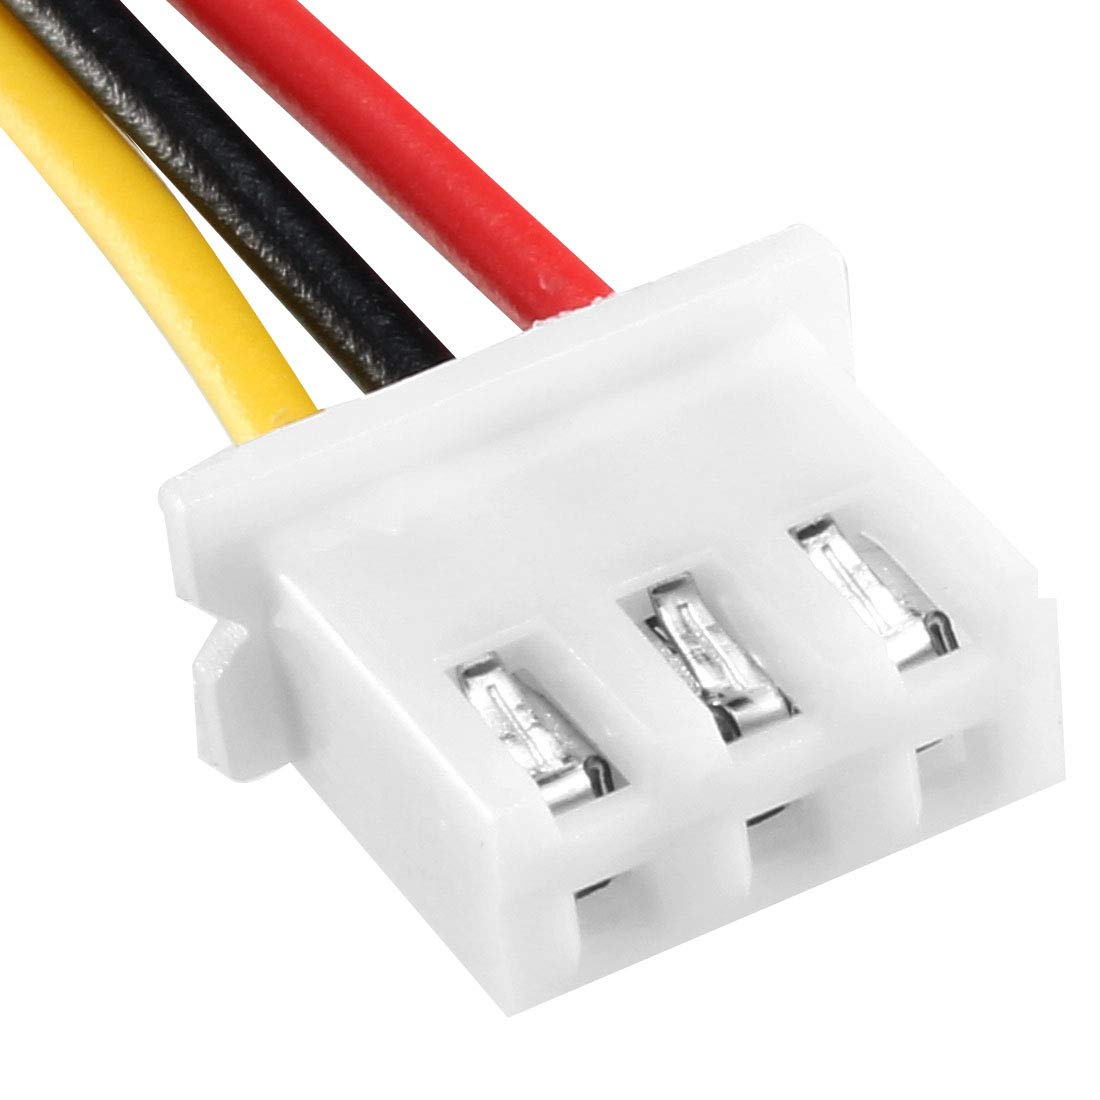 uxcell/® 2S 3Pin Female JST-XH Lipo Balance Wire Extension Lead Charger Plug Terminal Cable 26AWG 10cm